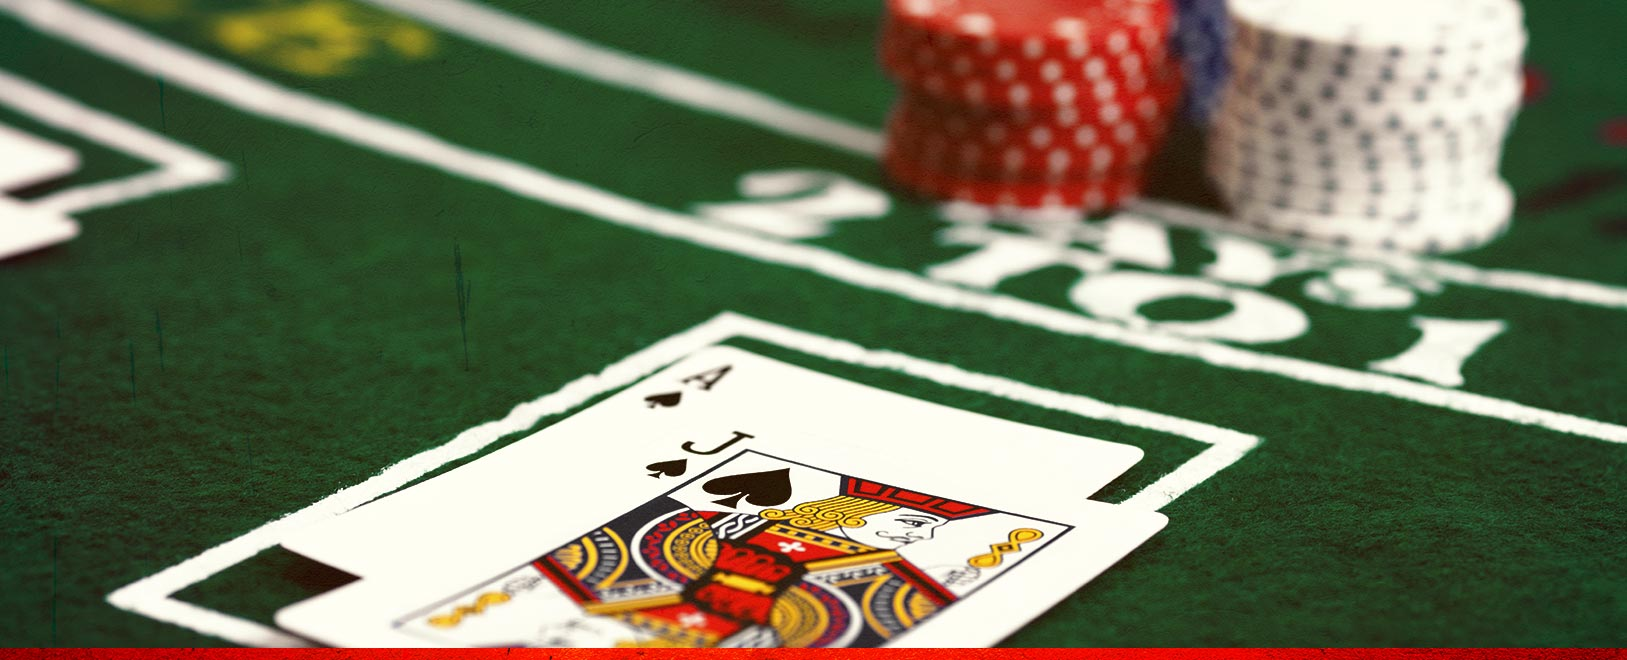 Blackjack Strategy: How to Play Against an Ace